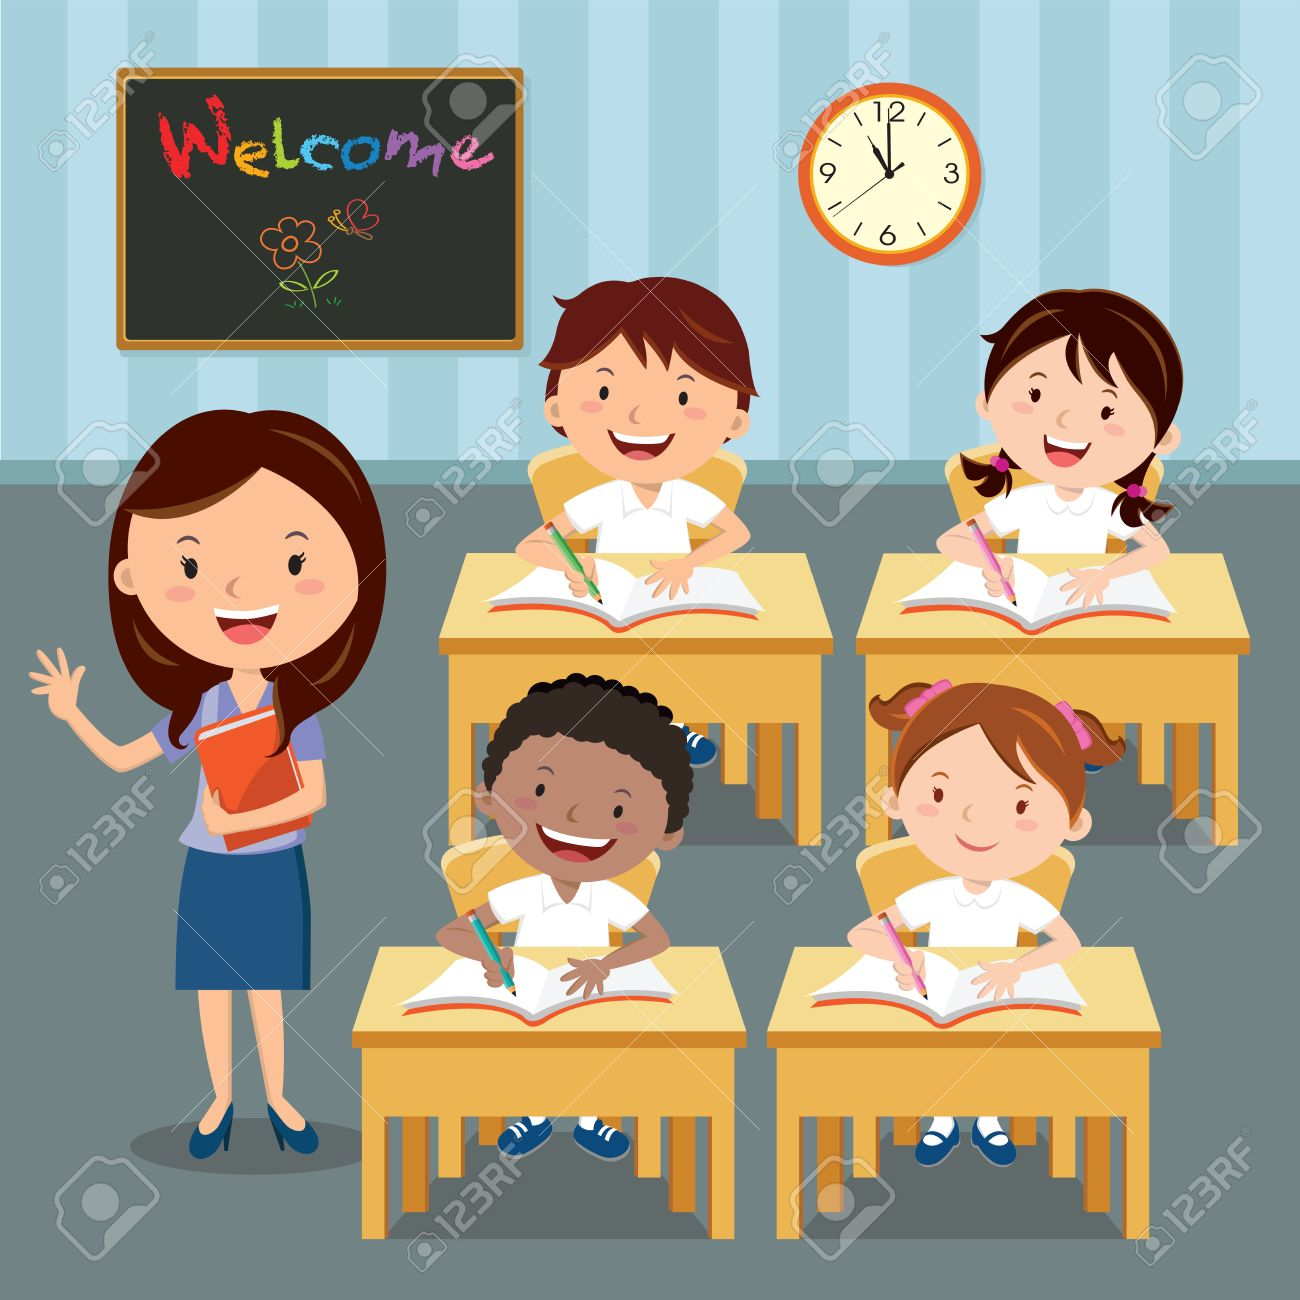 Teacher and school kids in classroom at lesson. illustration of primary School children studying in the classroom. - 65348590